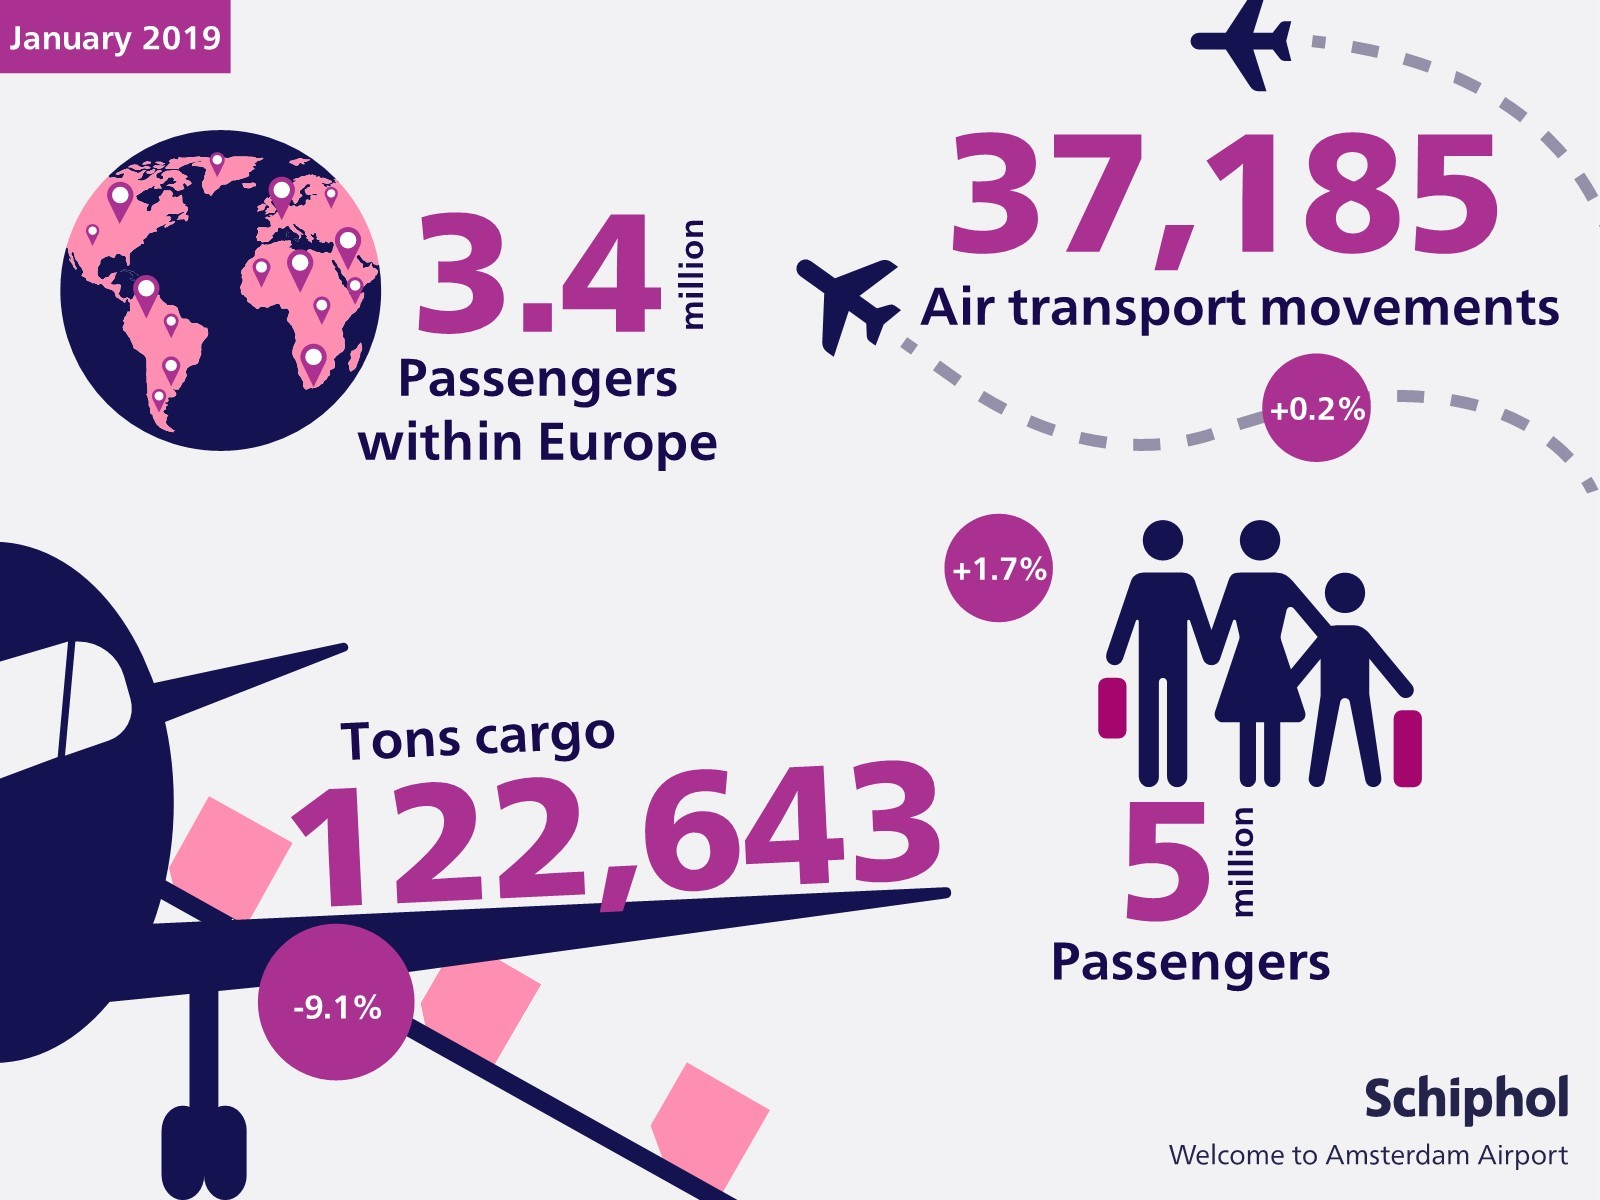 Infographic Traffic and transport figures for January 2019